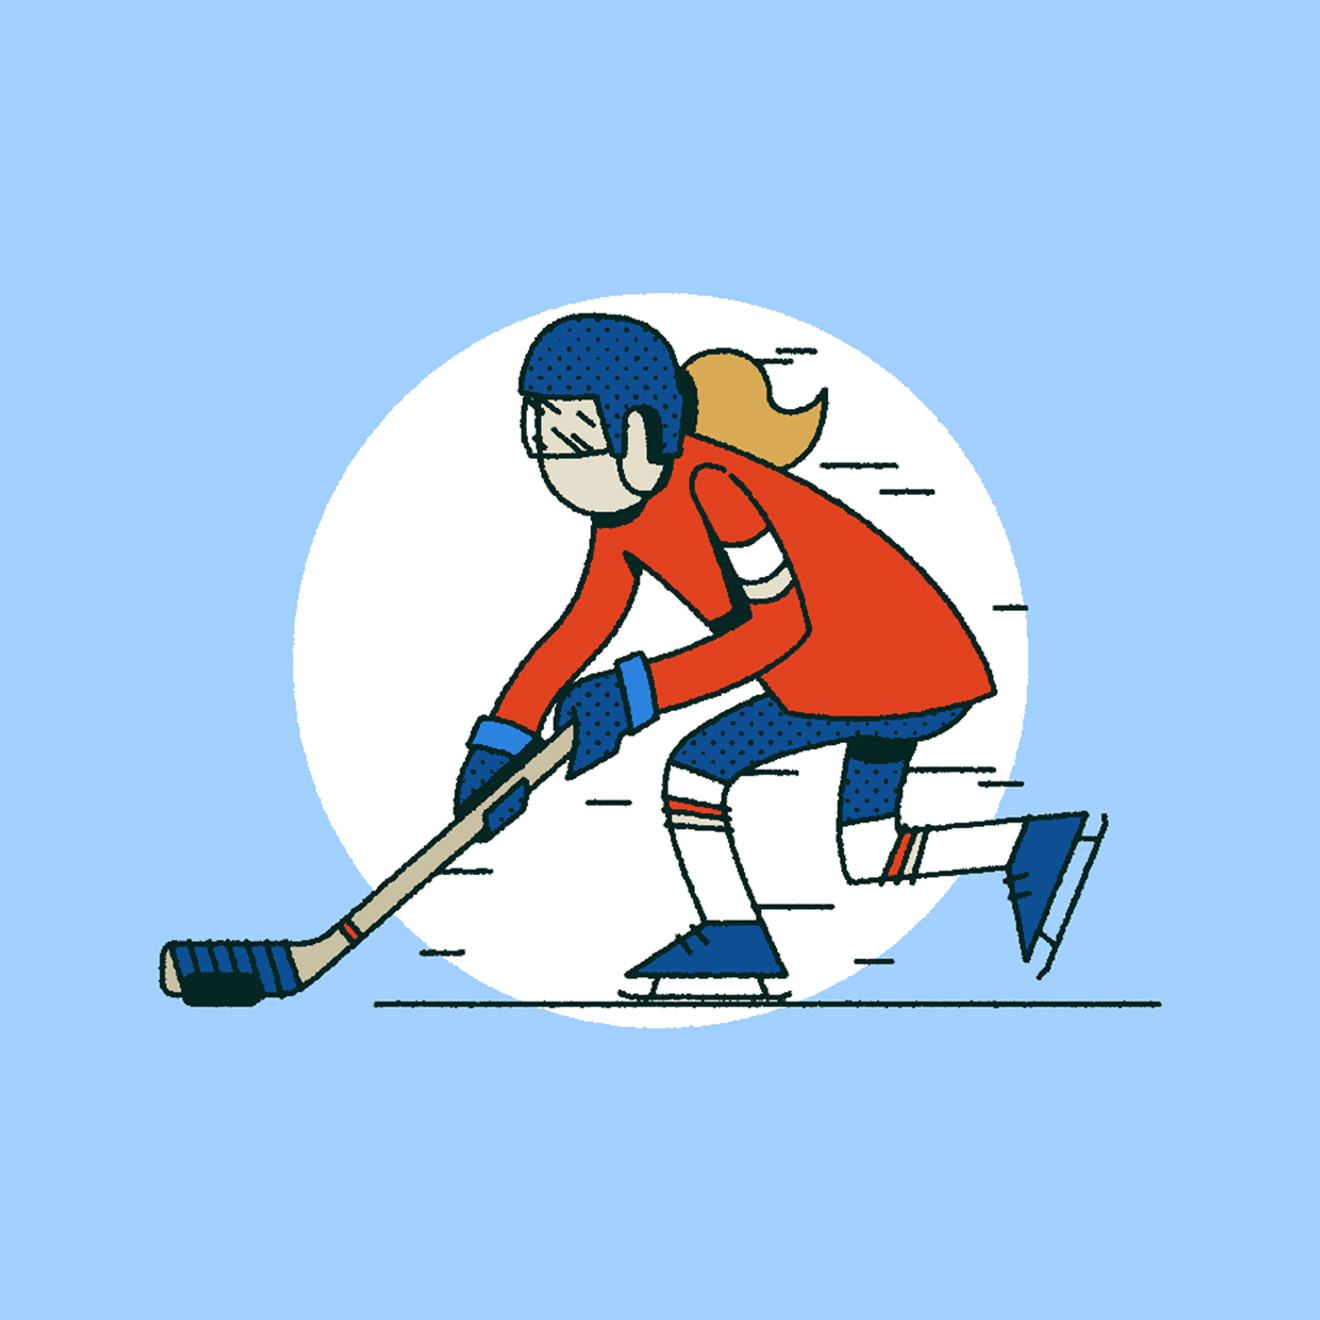 Blue, Red, White & Beige illustration of a woman playing hockey